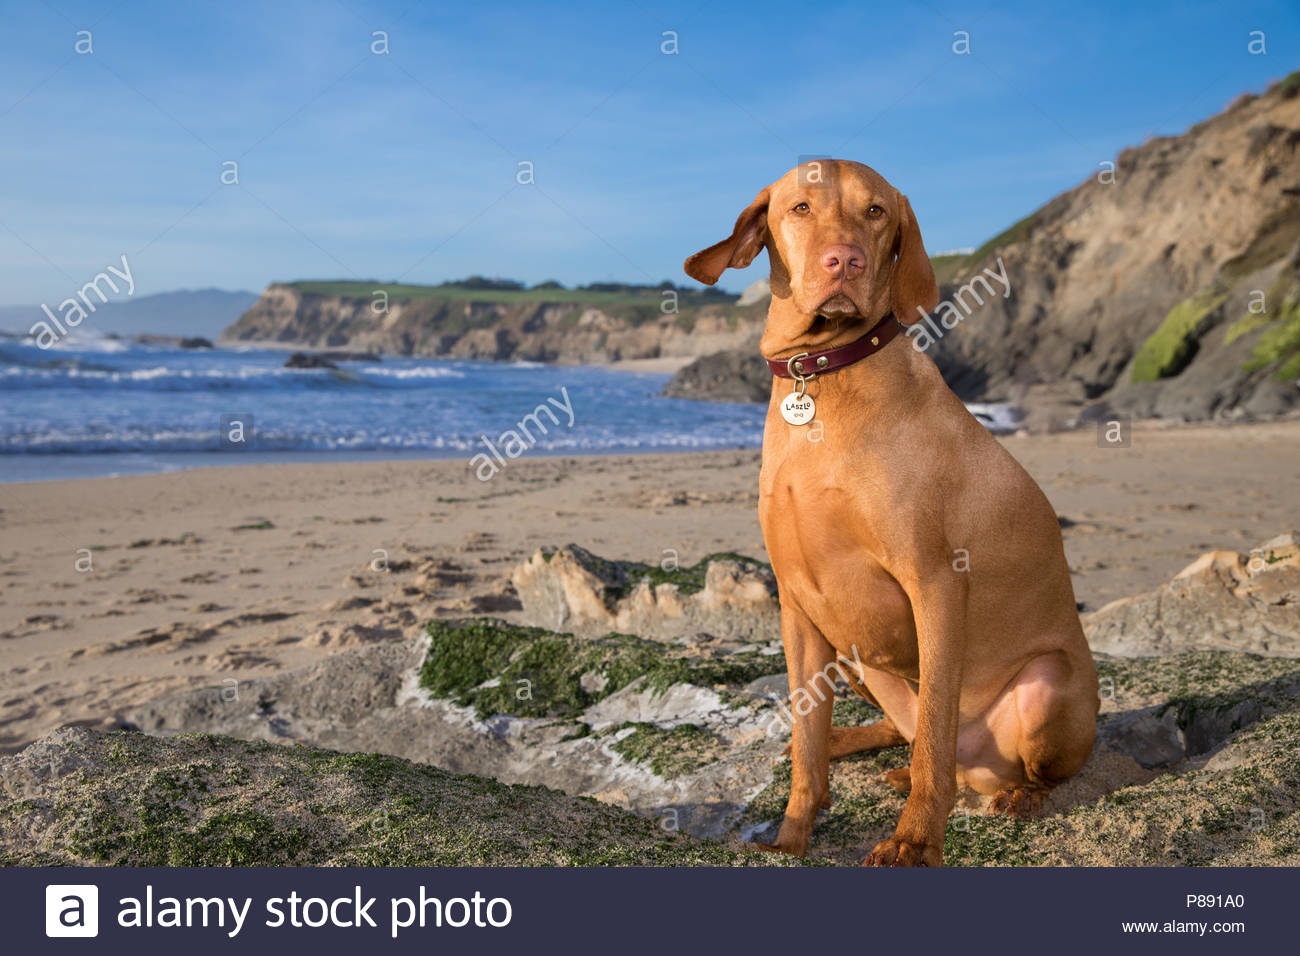 Stoic looking Hungarian Vizsla sitting on rock at the beach with the surf and cliffs in the background - Stock Image